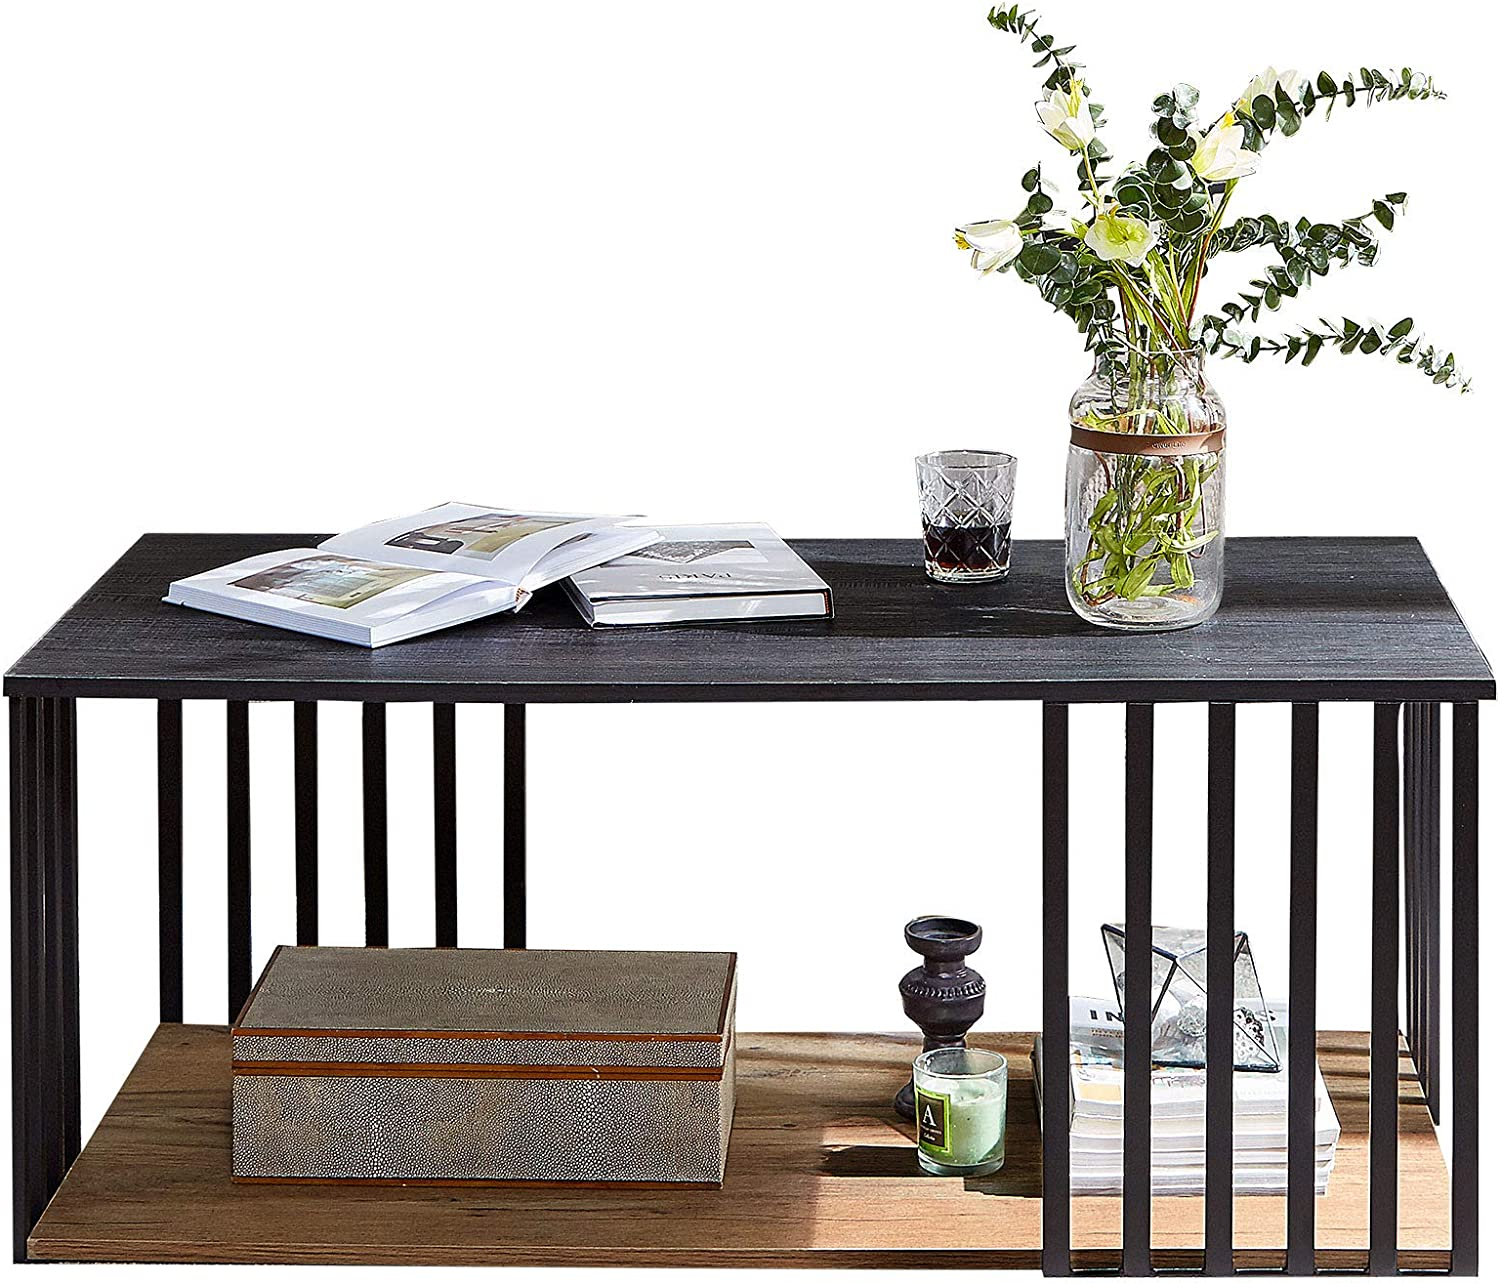 Linsy Home Black Coffee Table , 2 Tier Shelf for Living Room, Wood and Metal, LS209M3-A